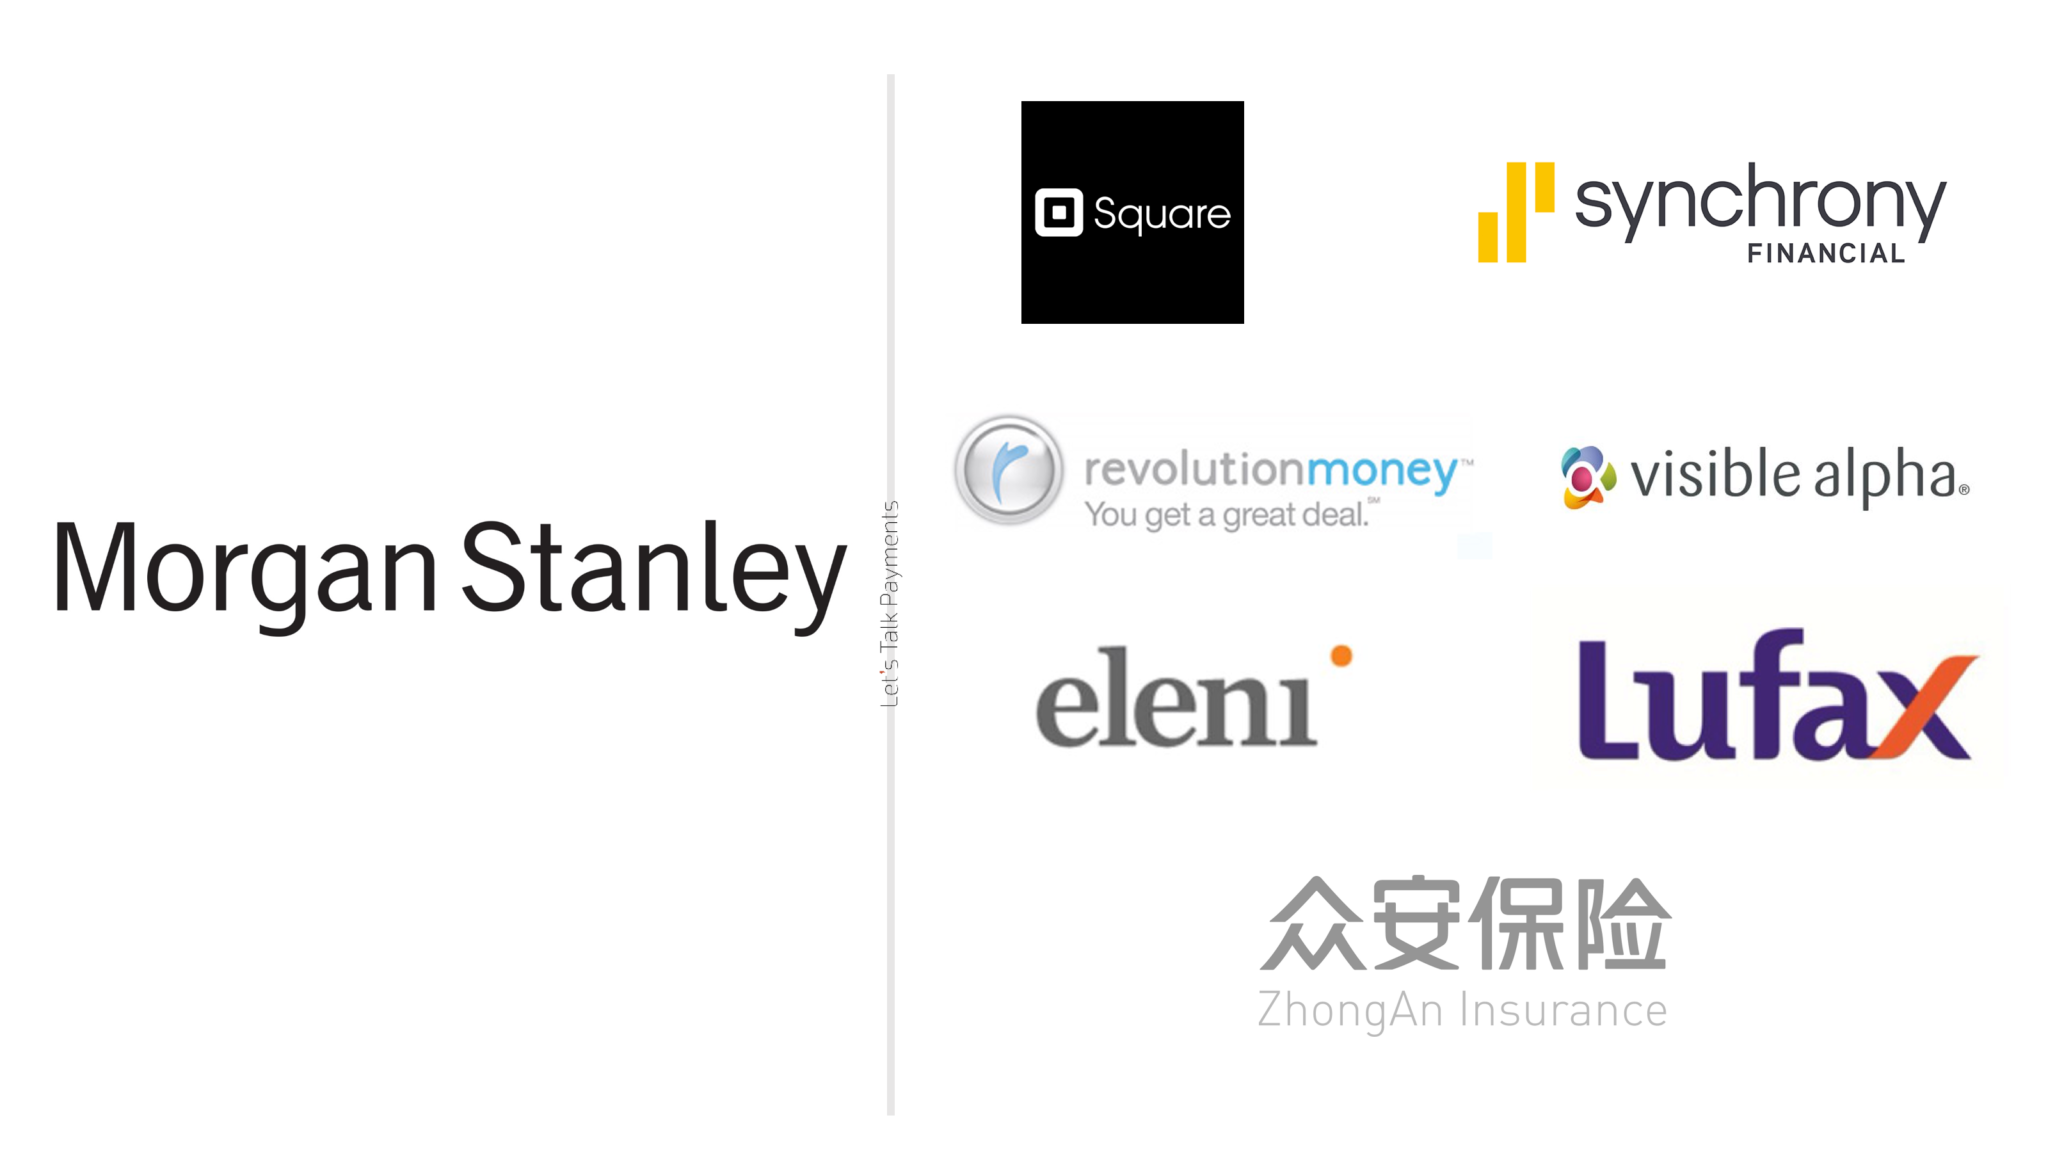 morgan stanley fintech investments